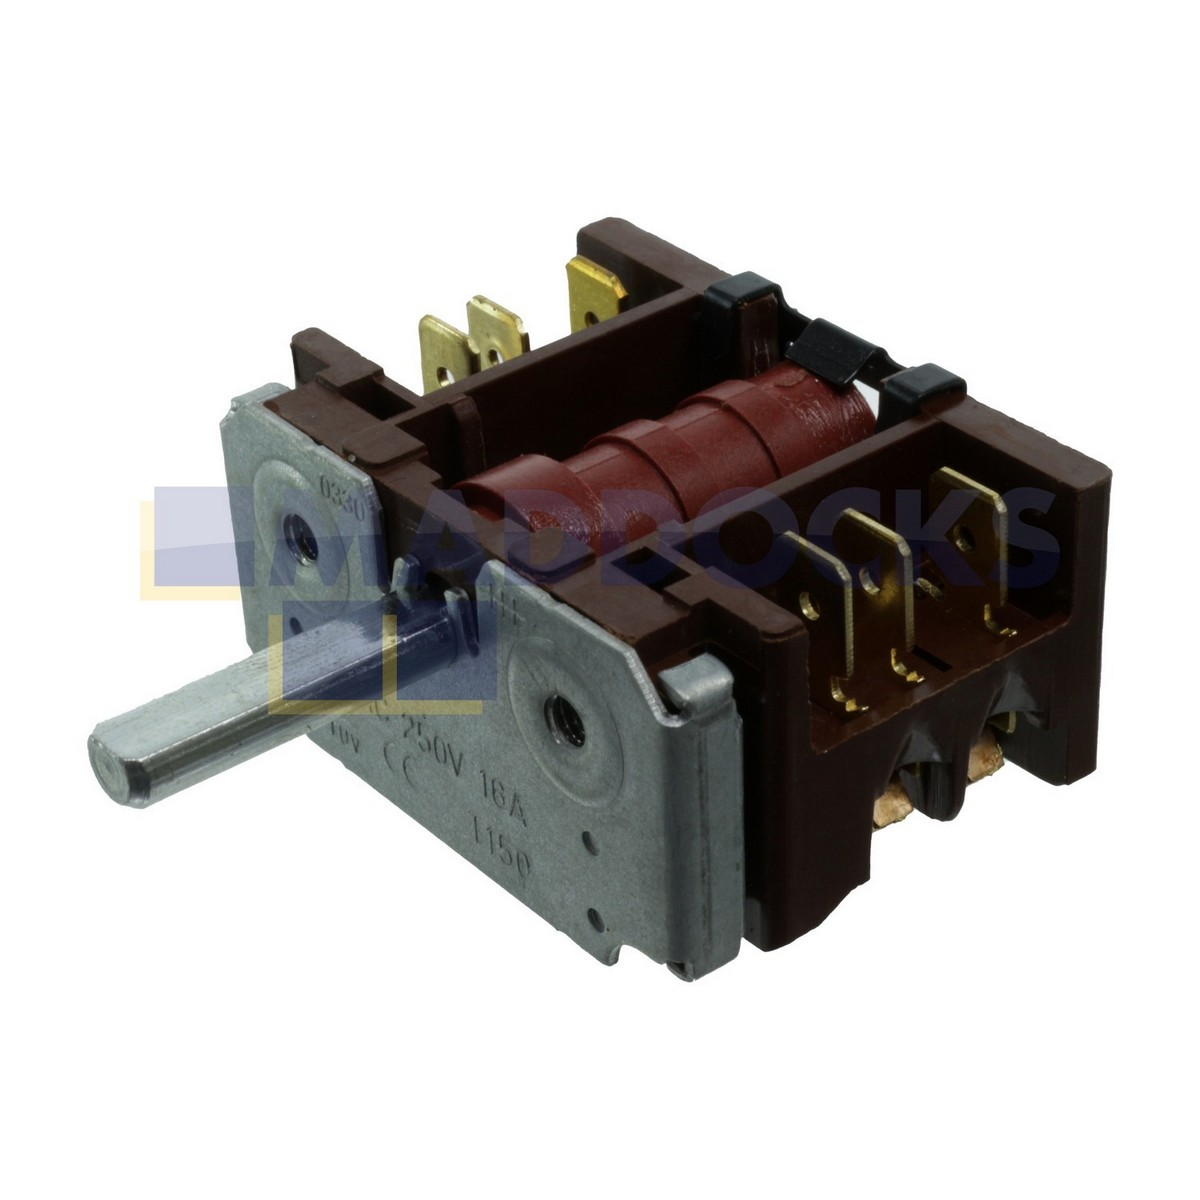 HOTPOINT C367EKH OVEN SELECTOR SWITCH